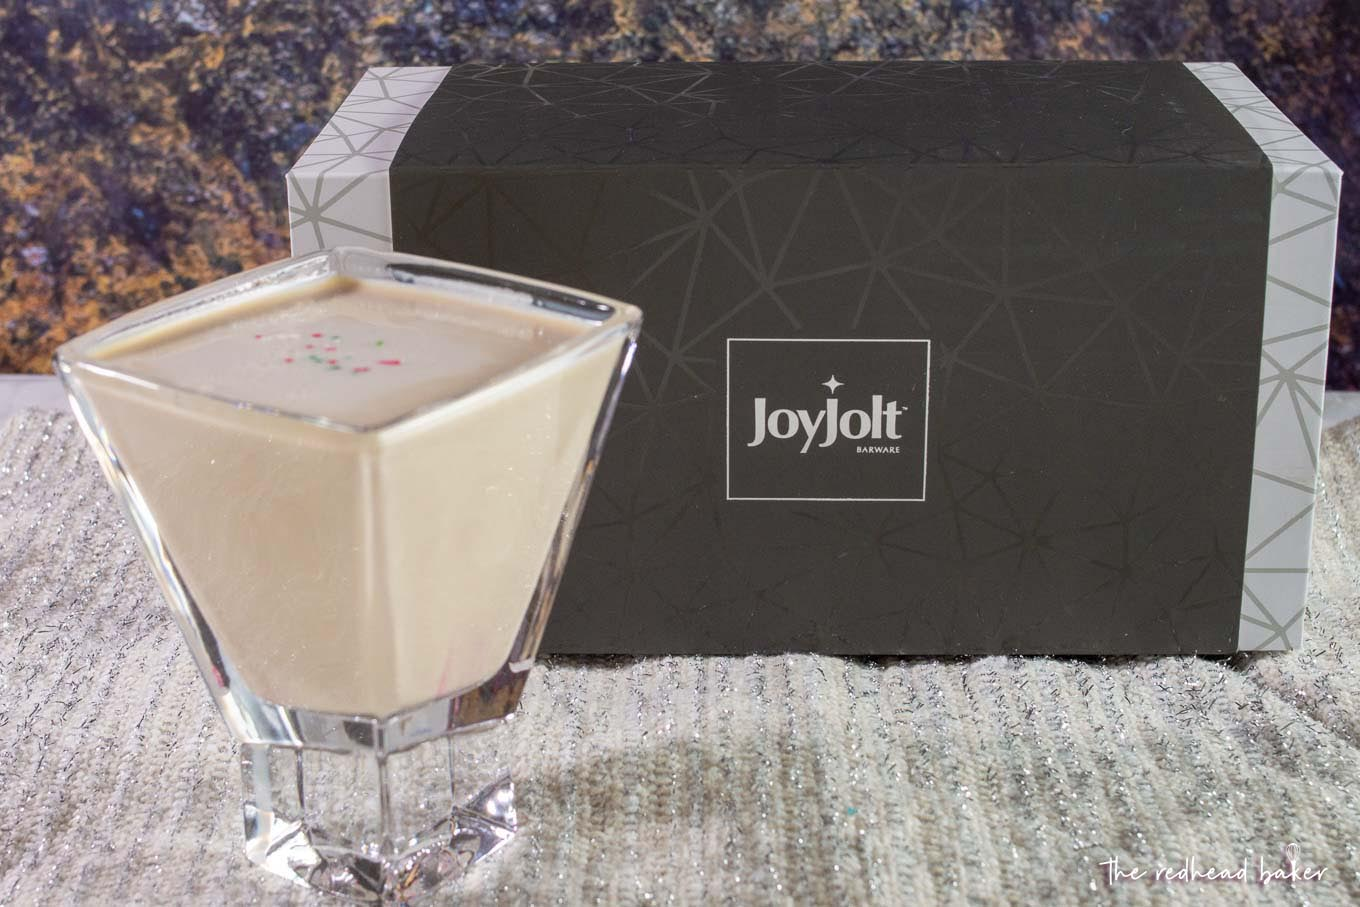 A sugar cookie martini in front of a box of Joy Jolt glassware